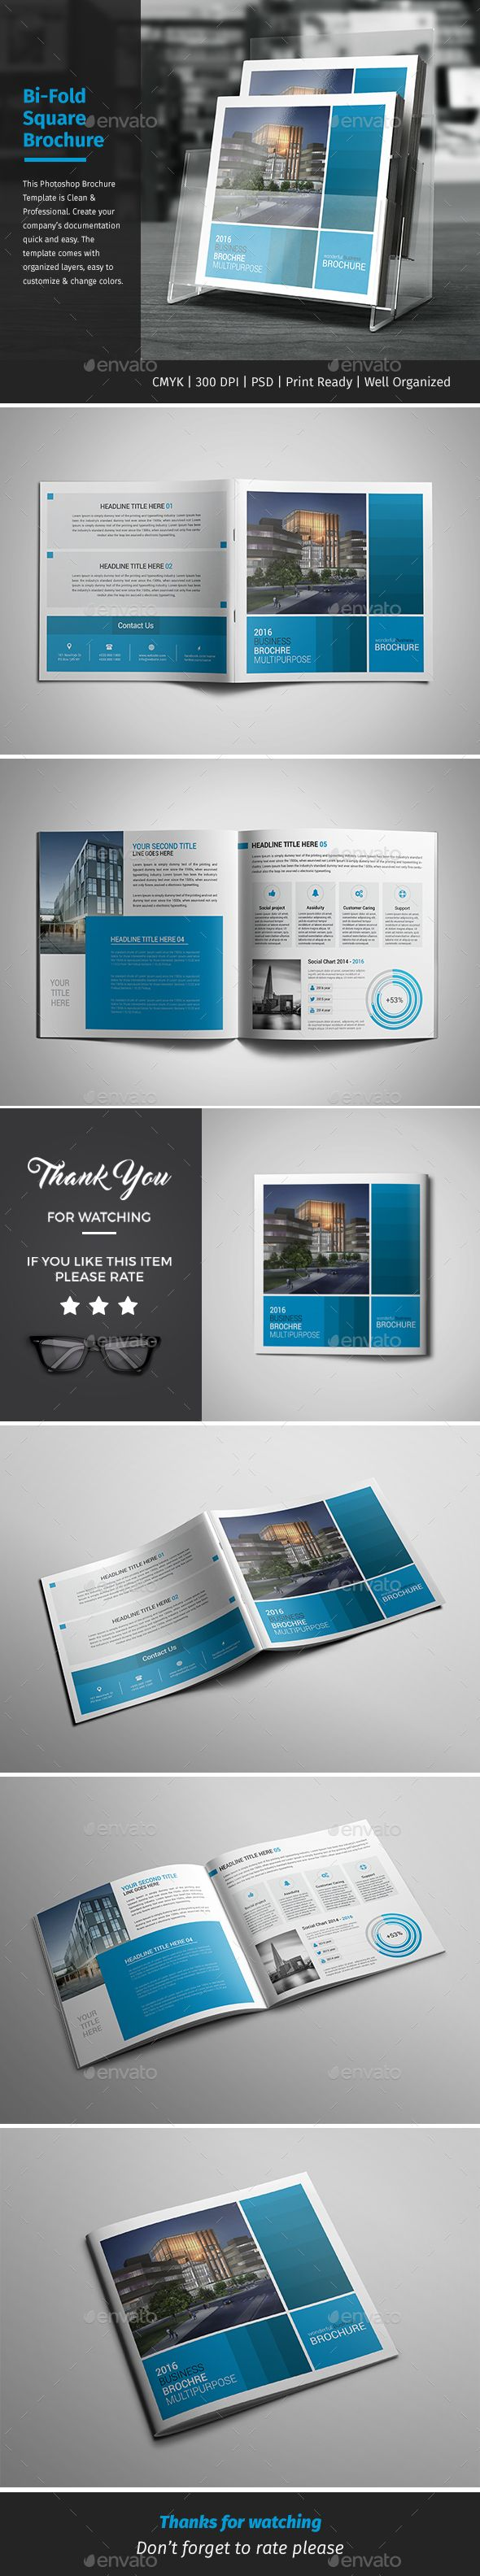 Corporate Bifold Square Brochure 08 U2014 PSD Template #marketing #scheme U2022  Download ➝ Https